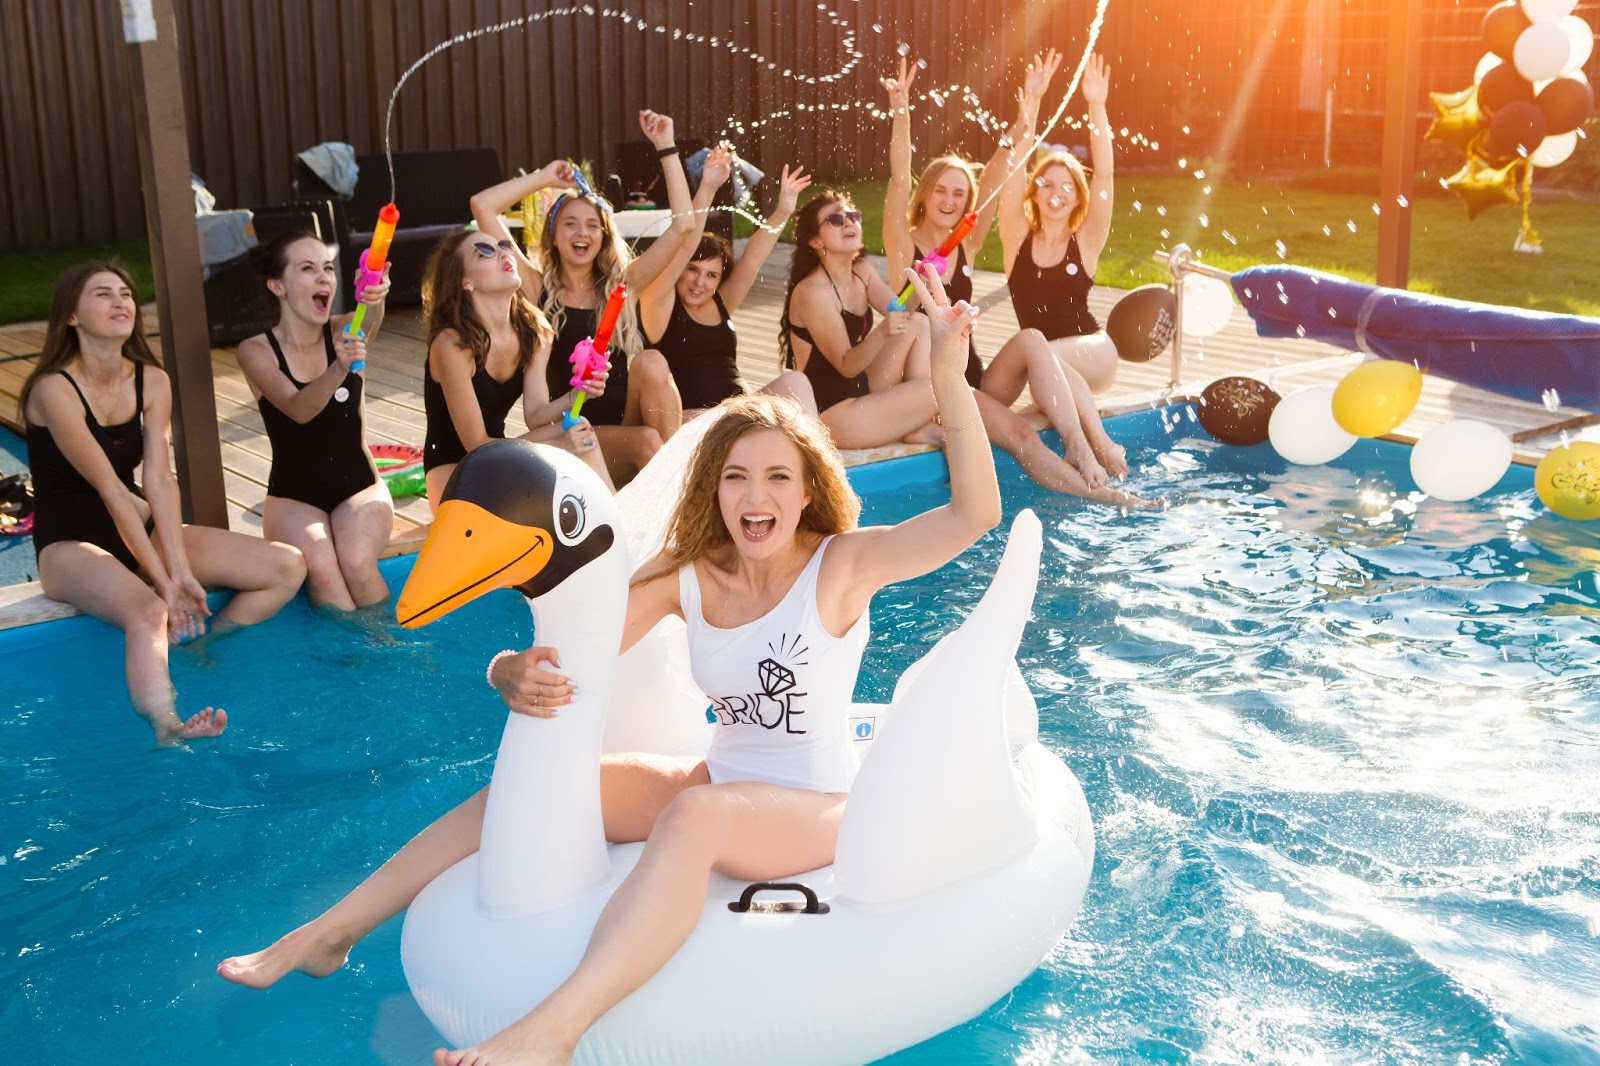 26 Bachelorette Party Swimsuits for Your Bach Bash